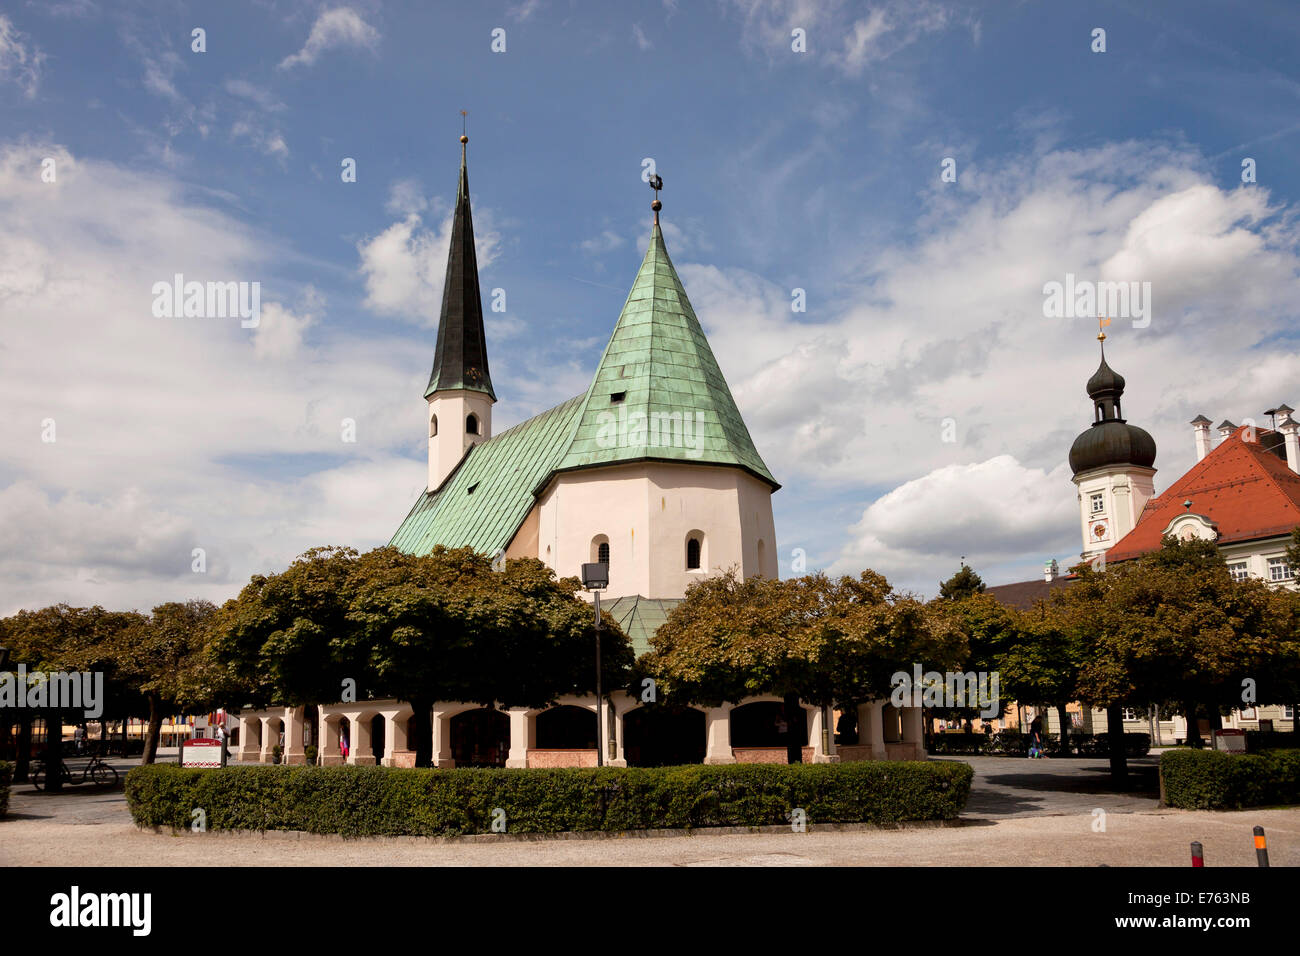 the Chapel of Grace and Town Hall on Kapellplatz square in Altoetting, Upper-Bavaria, Bavaria, Germany, Europe - Stock Image